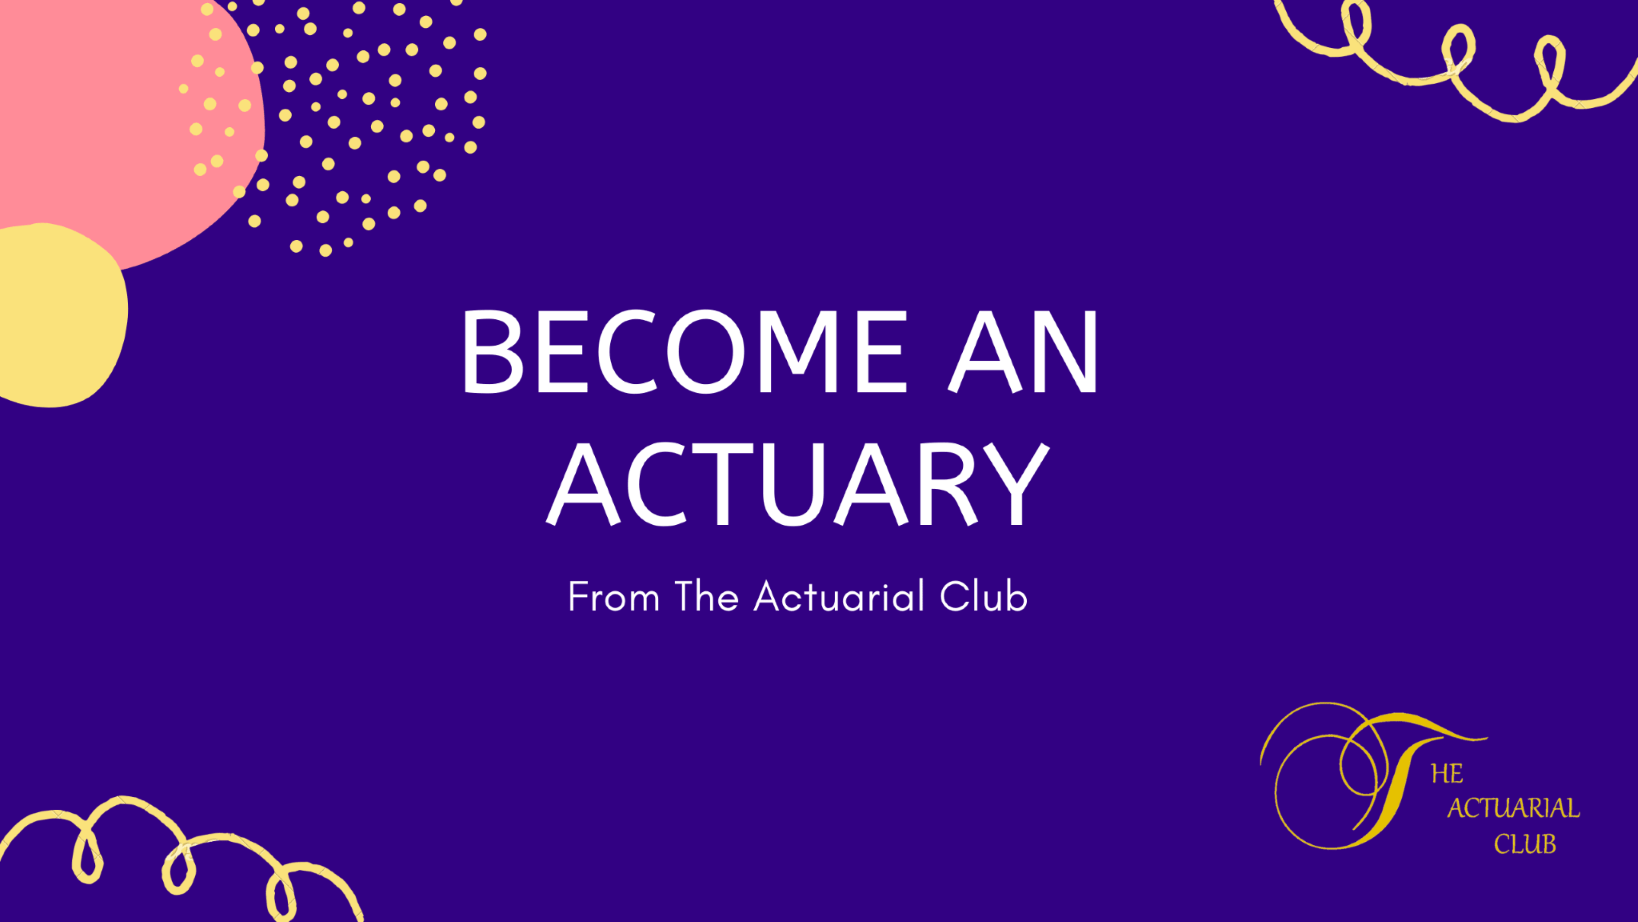 BECOME AN ACTUARY persuing actuaries doing actuaries the actuarial club tac